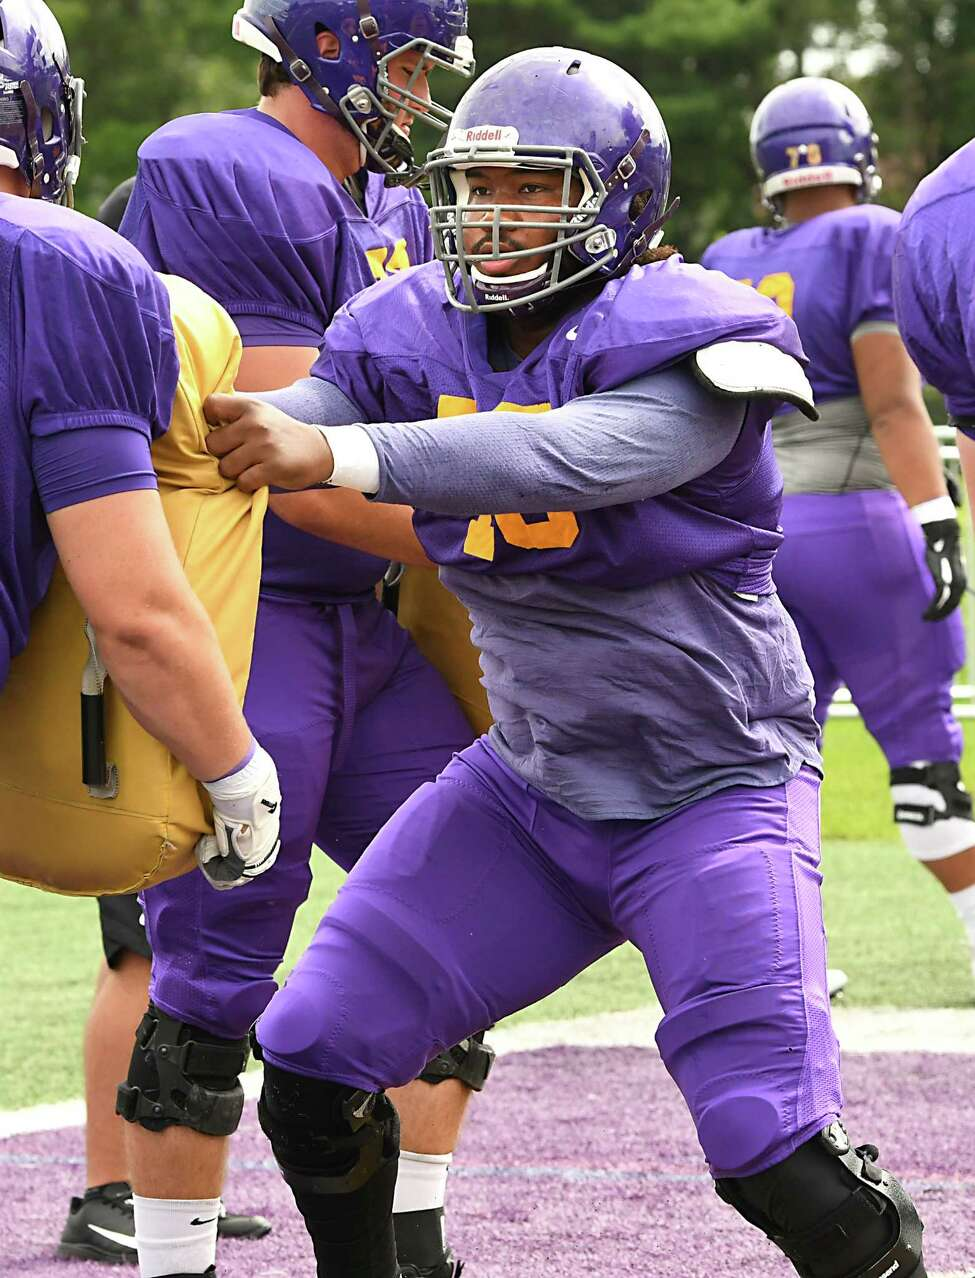 UAlbany offensive lineman Micah Royster runs drills during football practice at Casey Stadium on Tuesday, Aug. 21, 2018 in Albany, N.Y. (Lori Van Buren/Times Union)